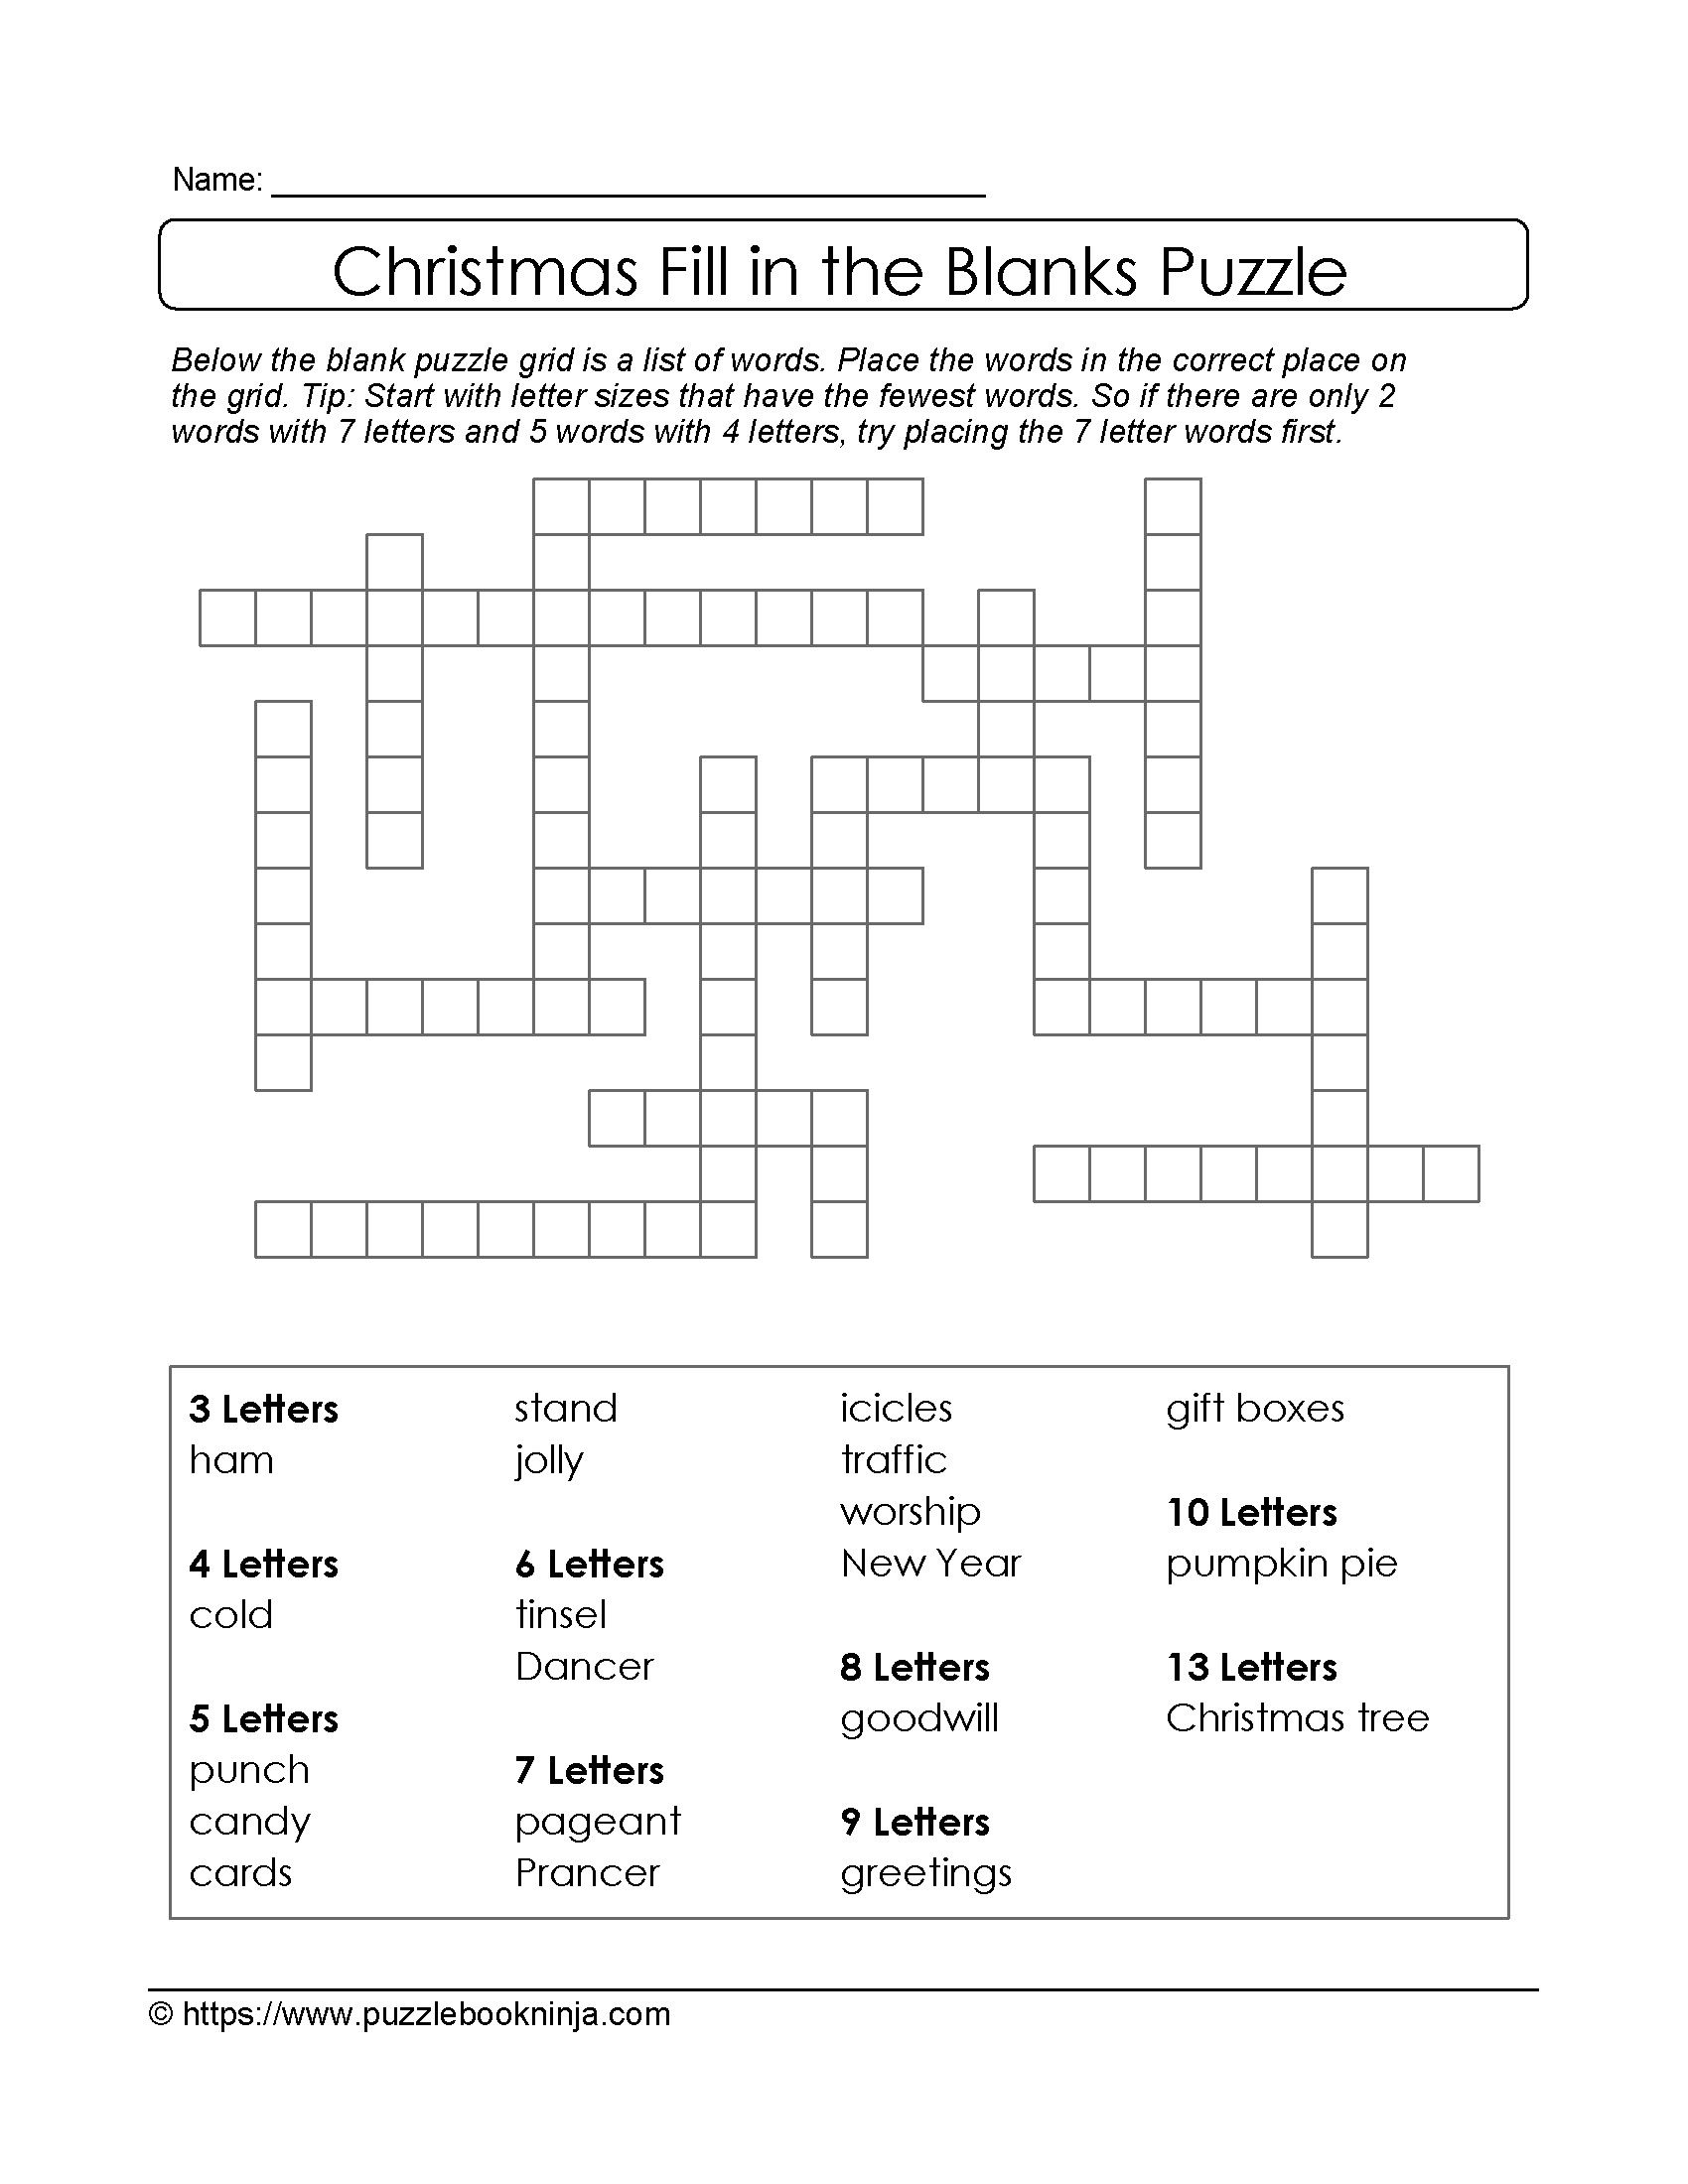 Freebie Xmas Puzzle To Print. Fill In The Blanks Crossword Like - Printable Conflict Resolution Crossword Puzzle